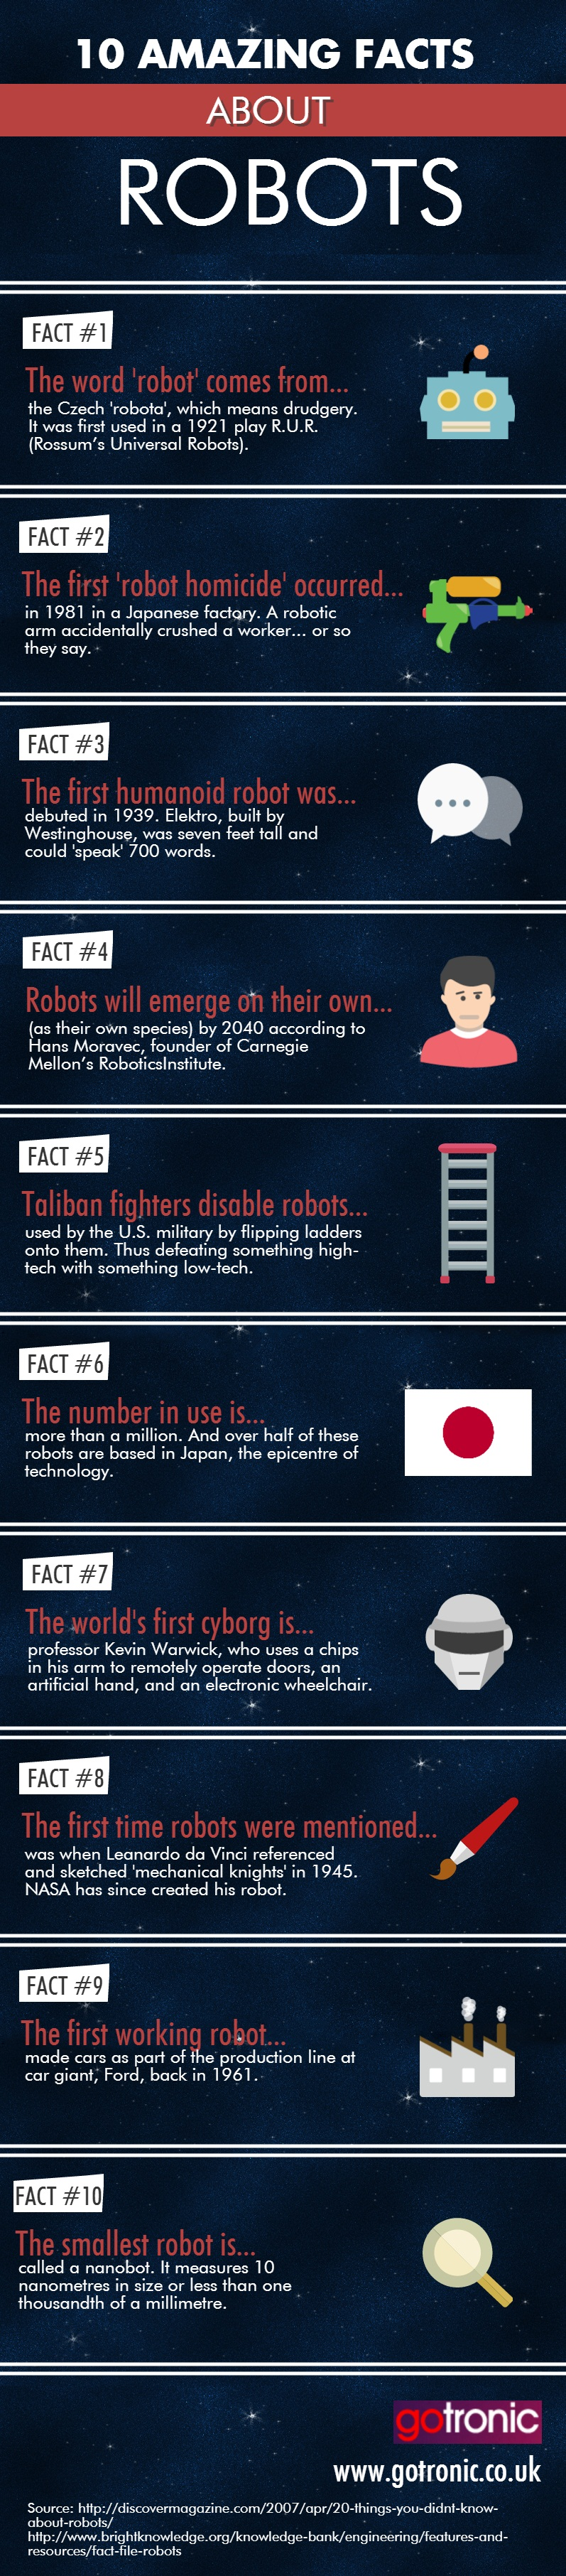 10 Amazing Facts About Robots